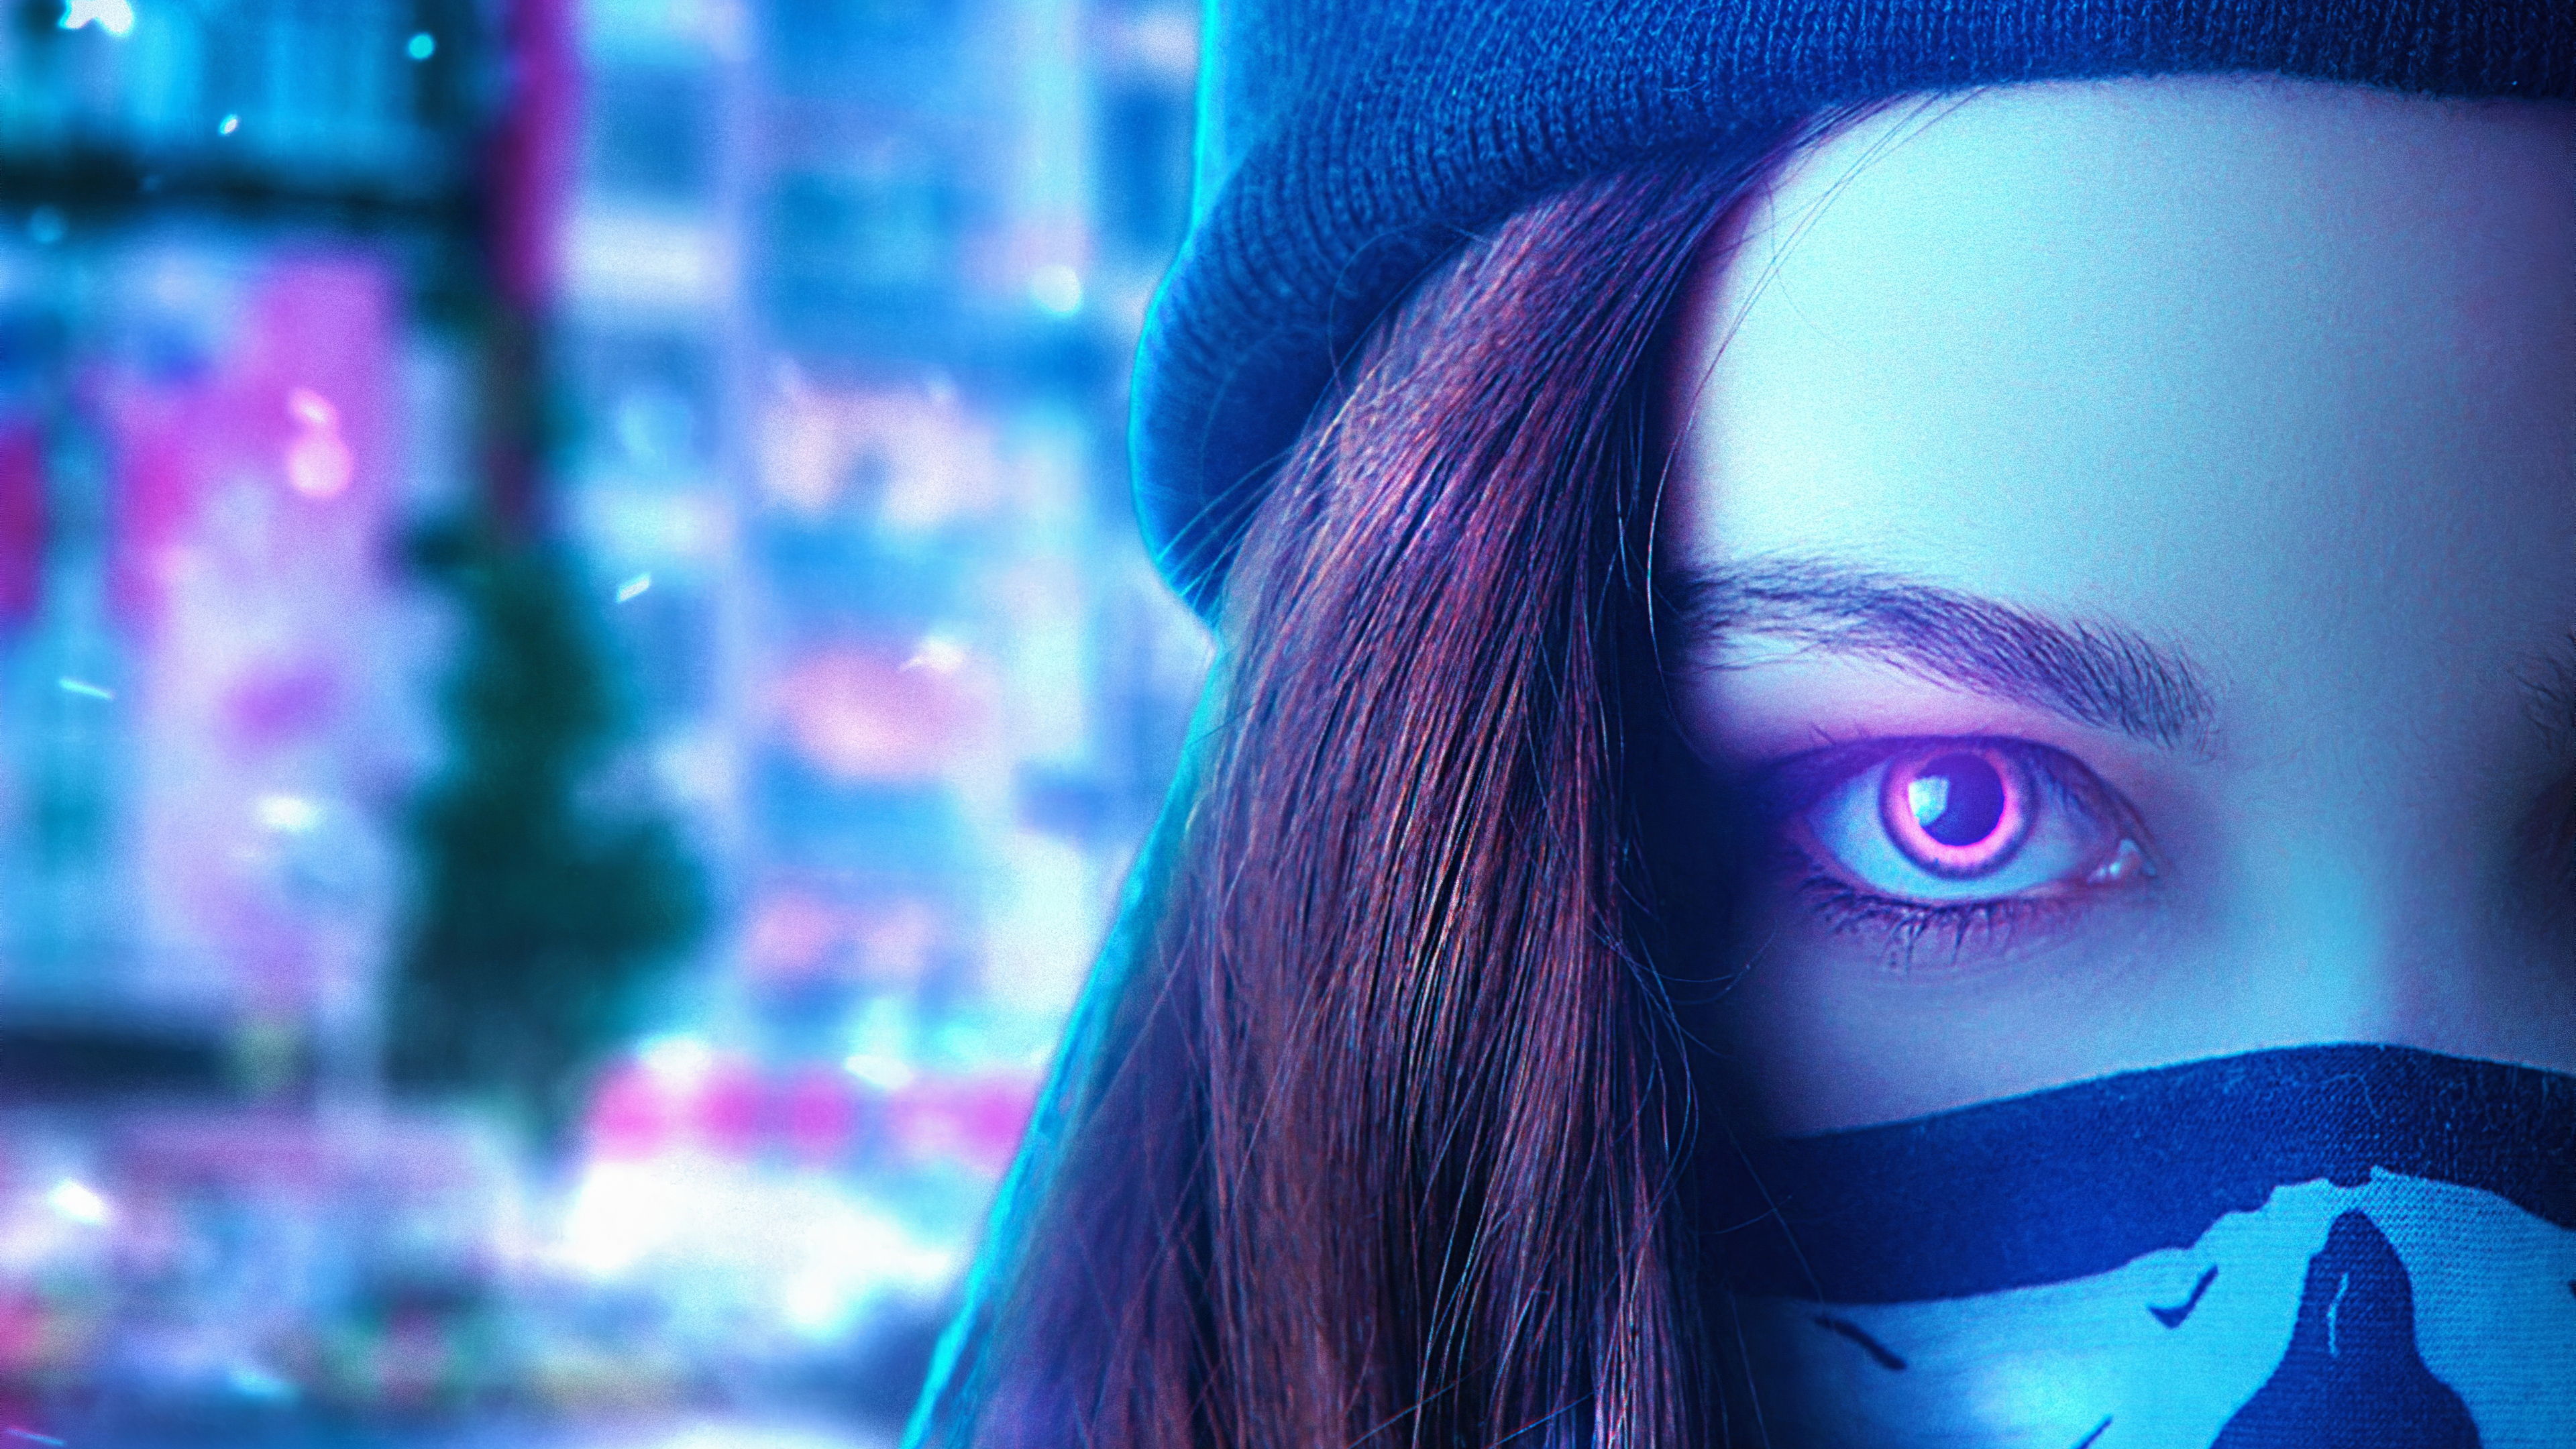 1080x1920 Neon Eyes Girl 4k Iphone 7 6s 6 Plus Pixel Xl One Plus 3 3t 5 Hd 4k Wallpapers Images Backgrounds Photos And Pictures